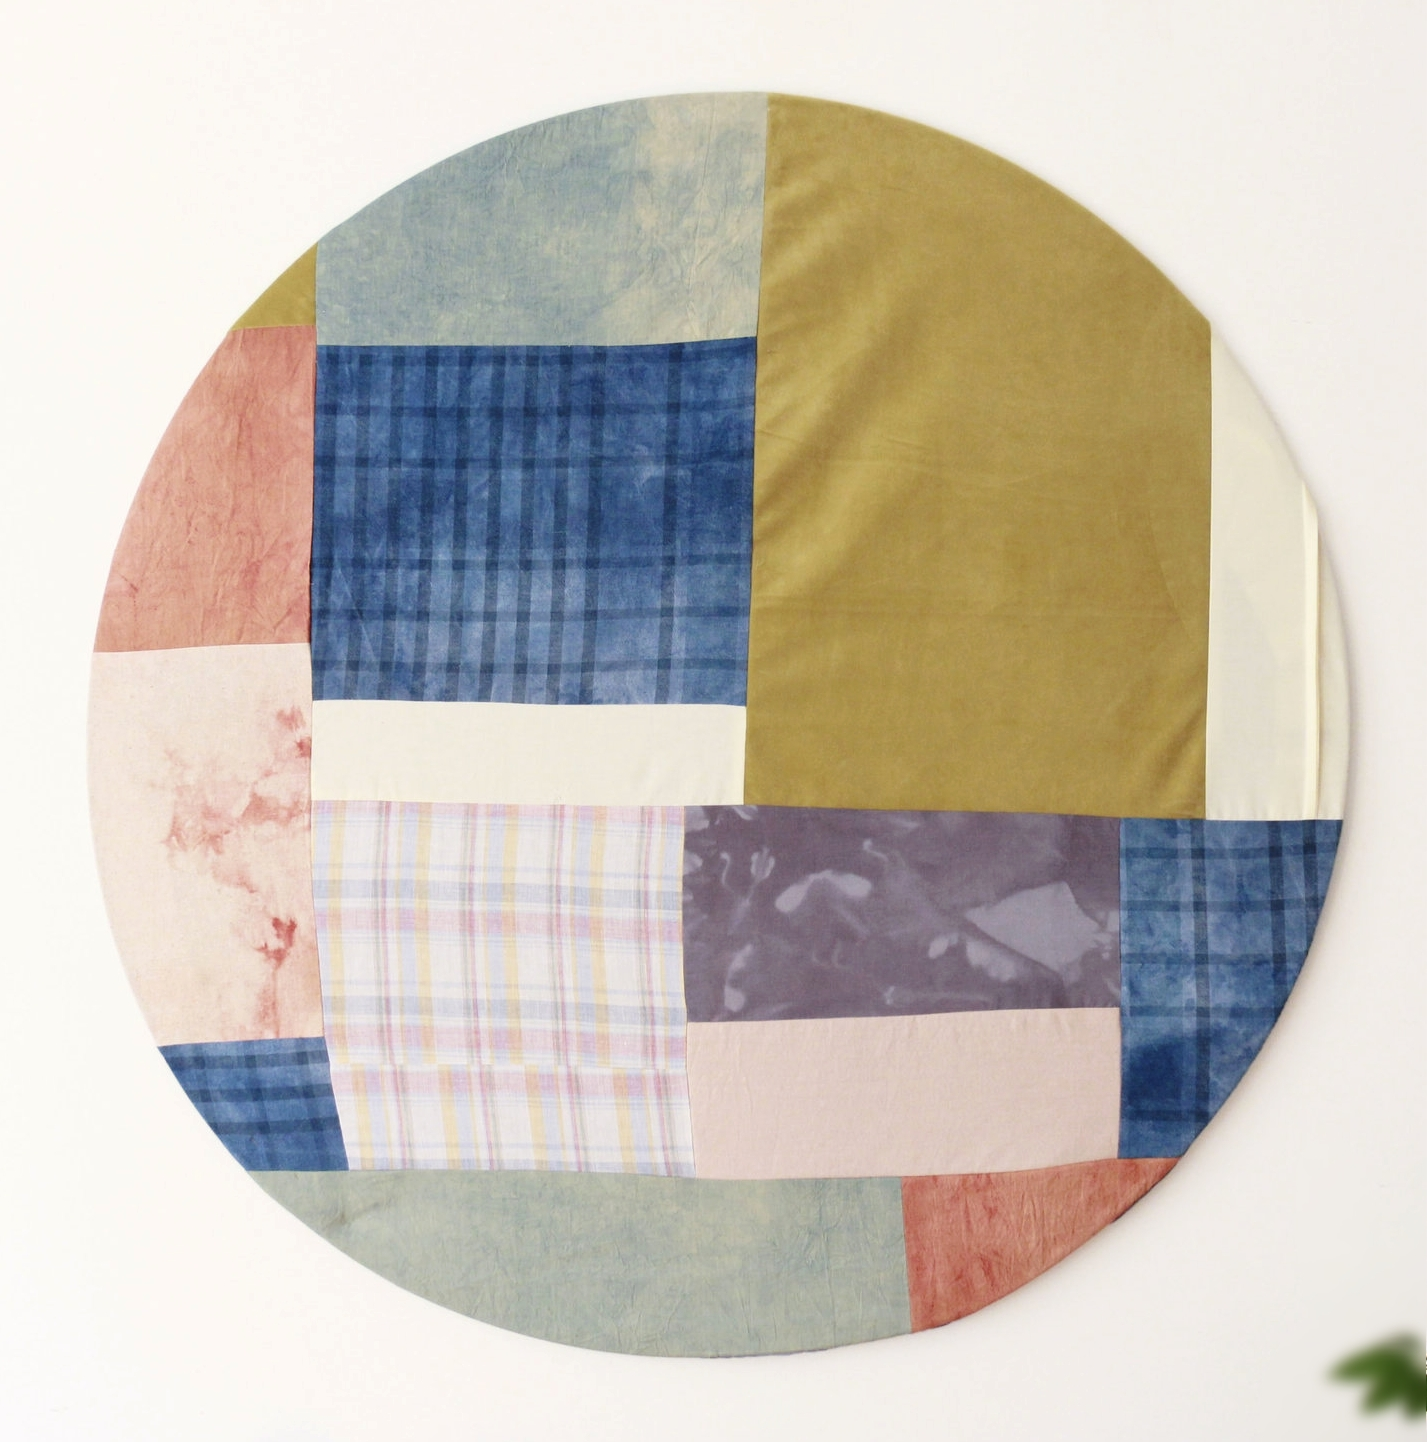 quilted circle art, hand-dyed fabric scraps in indigo, madder root.